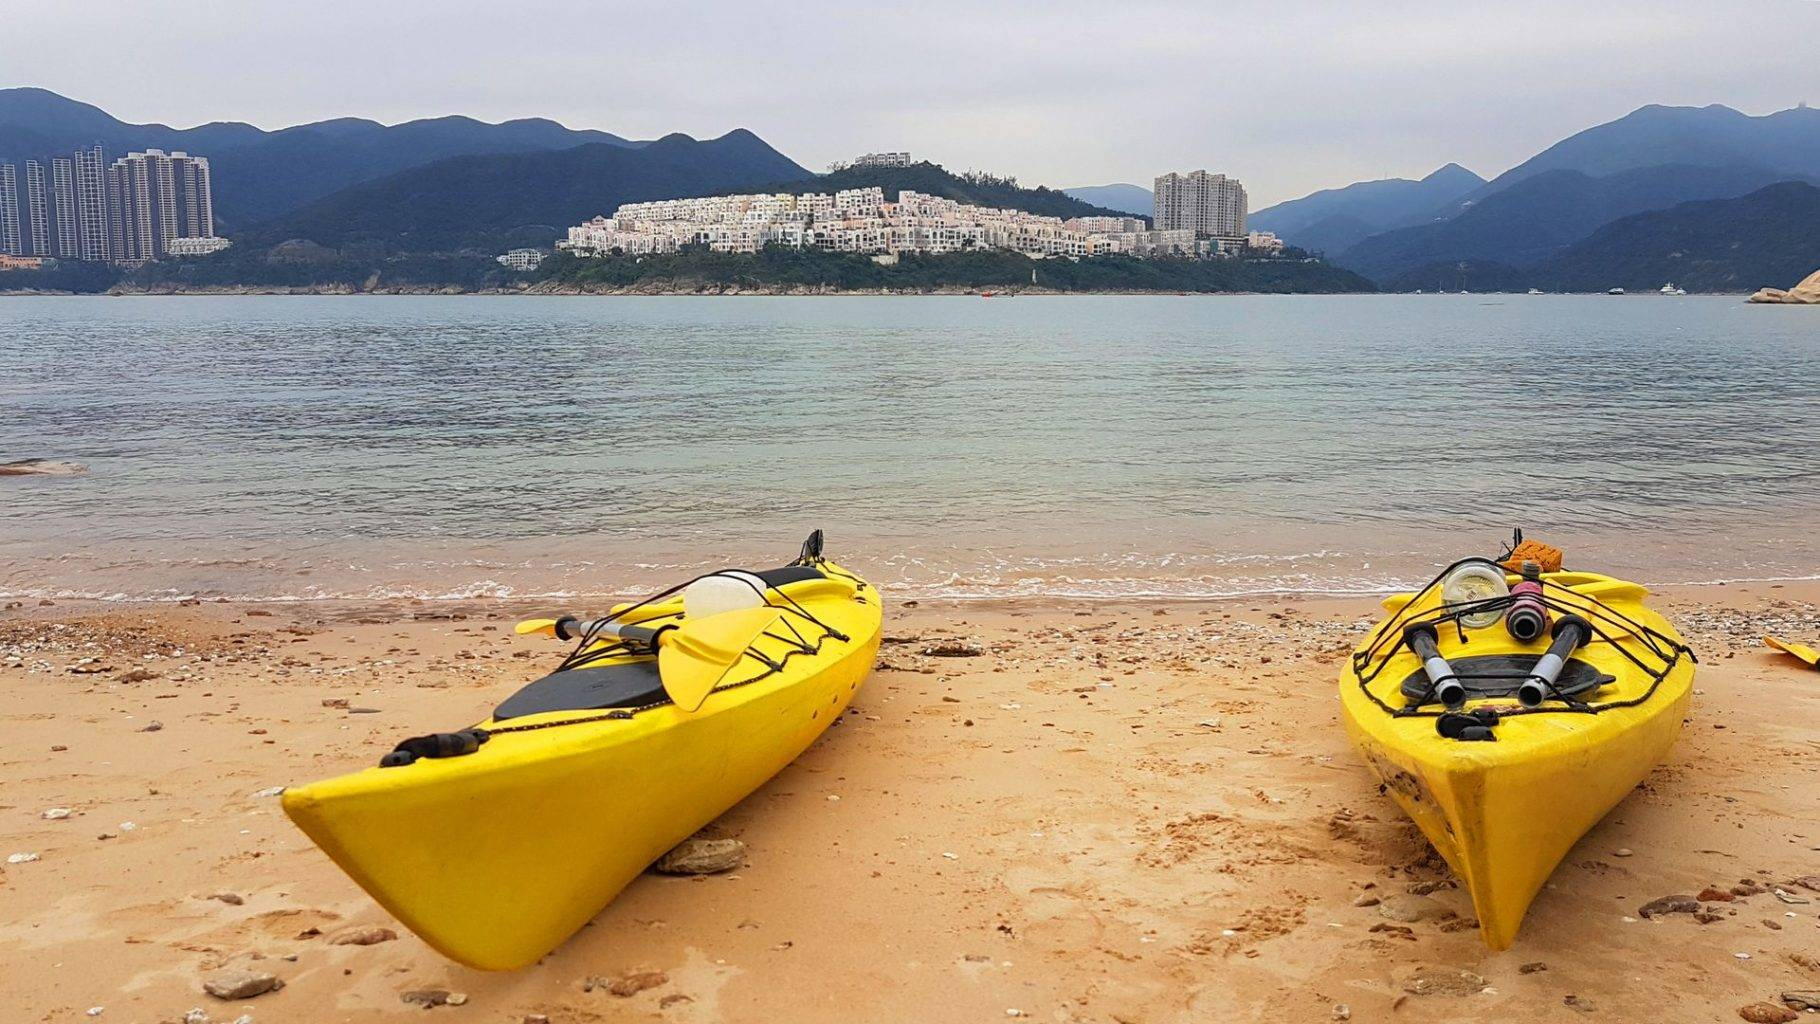 25 Mar 2019 Tai tam sea kayak trip Hong Kong